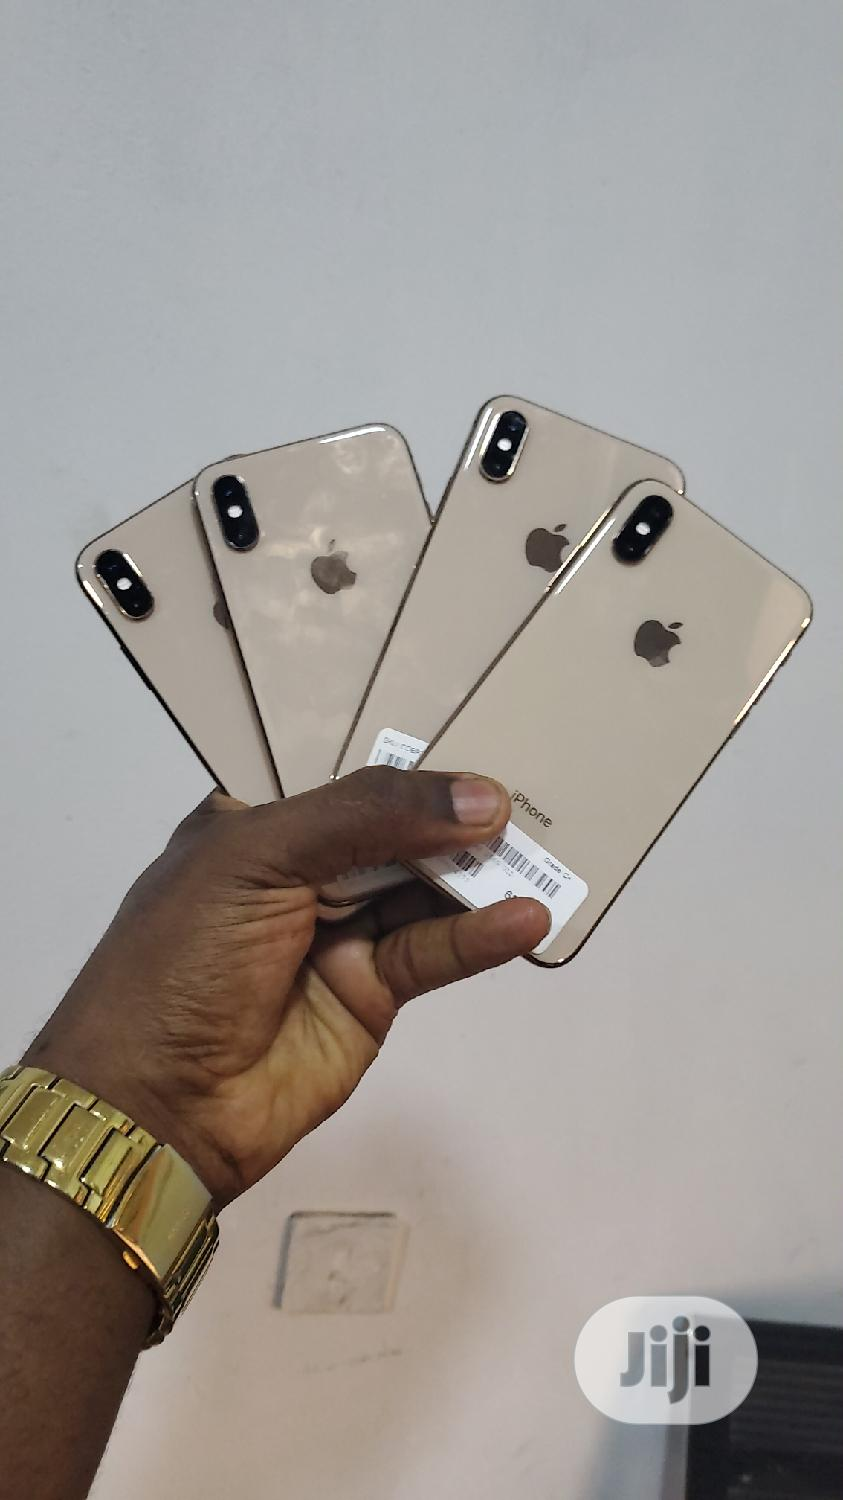 Apple iPhone XS Max 512 GB | Mobile Phones for sale in Ikeja, Lagos State, Nigeria